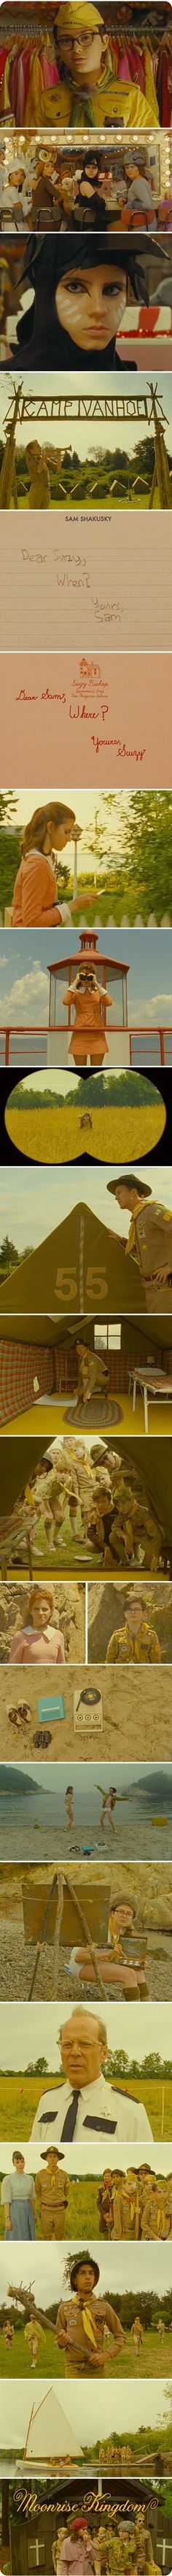 moonrise kingdom cannot wait to see this